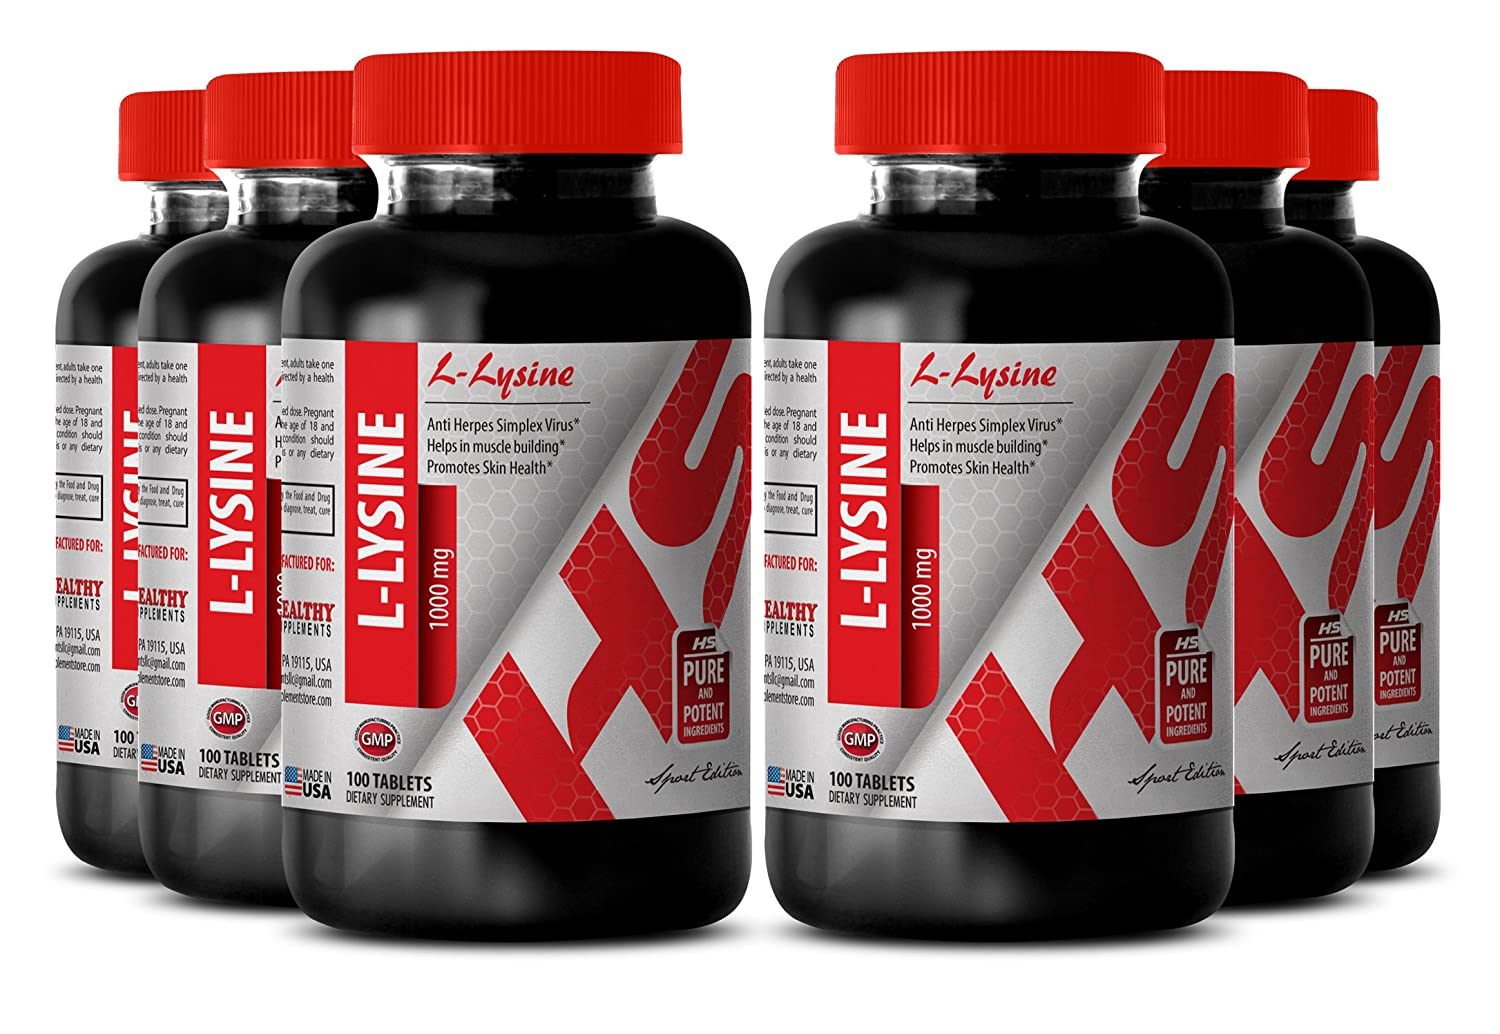 Amazon.com: Lysine weight loss - L-LYSINE SUPPLEMENT 1000 MG - fat burner (6 Bottles): Health & Personal Care